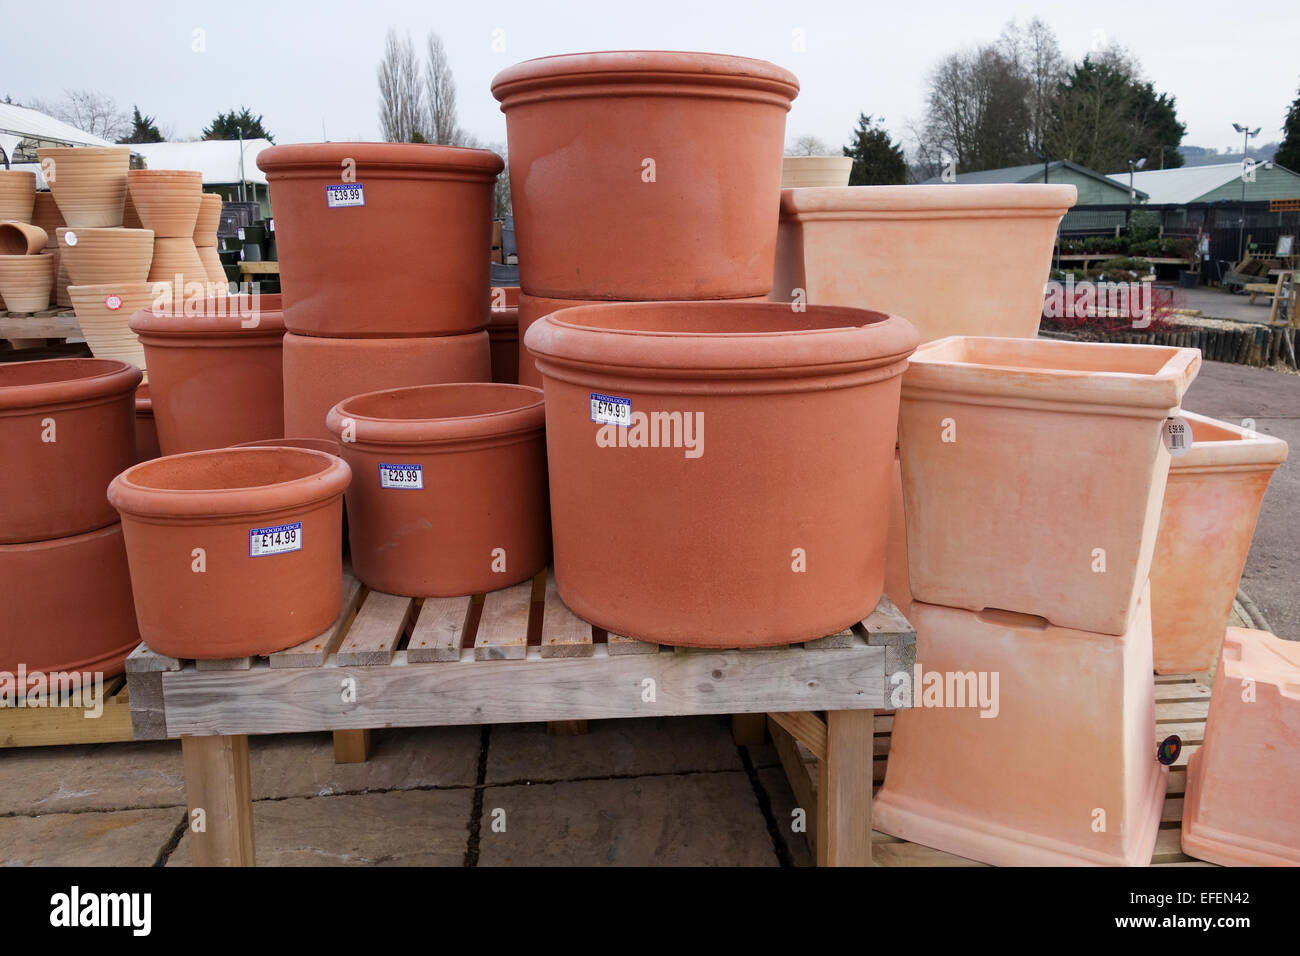 Merveilleux Terracotta Garden Pots For Sale At A UK Garden Centre   Stock Image